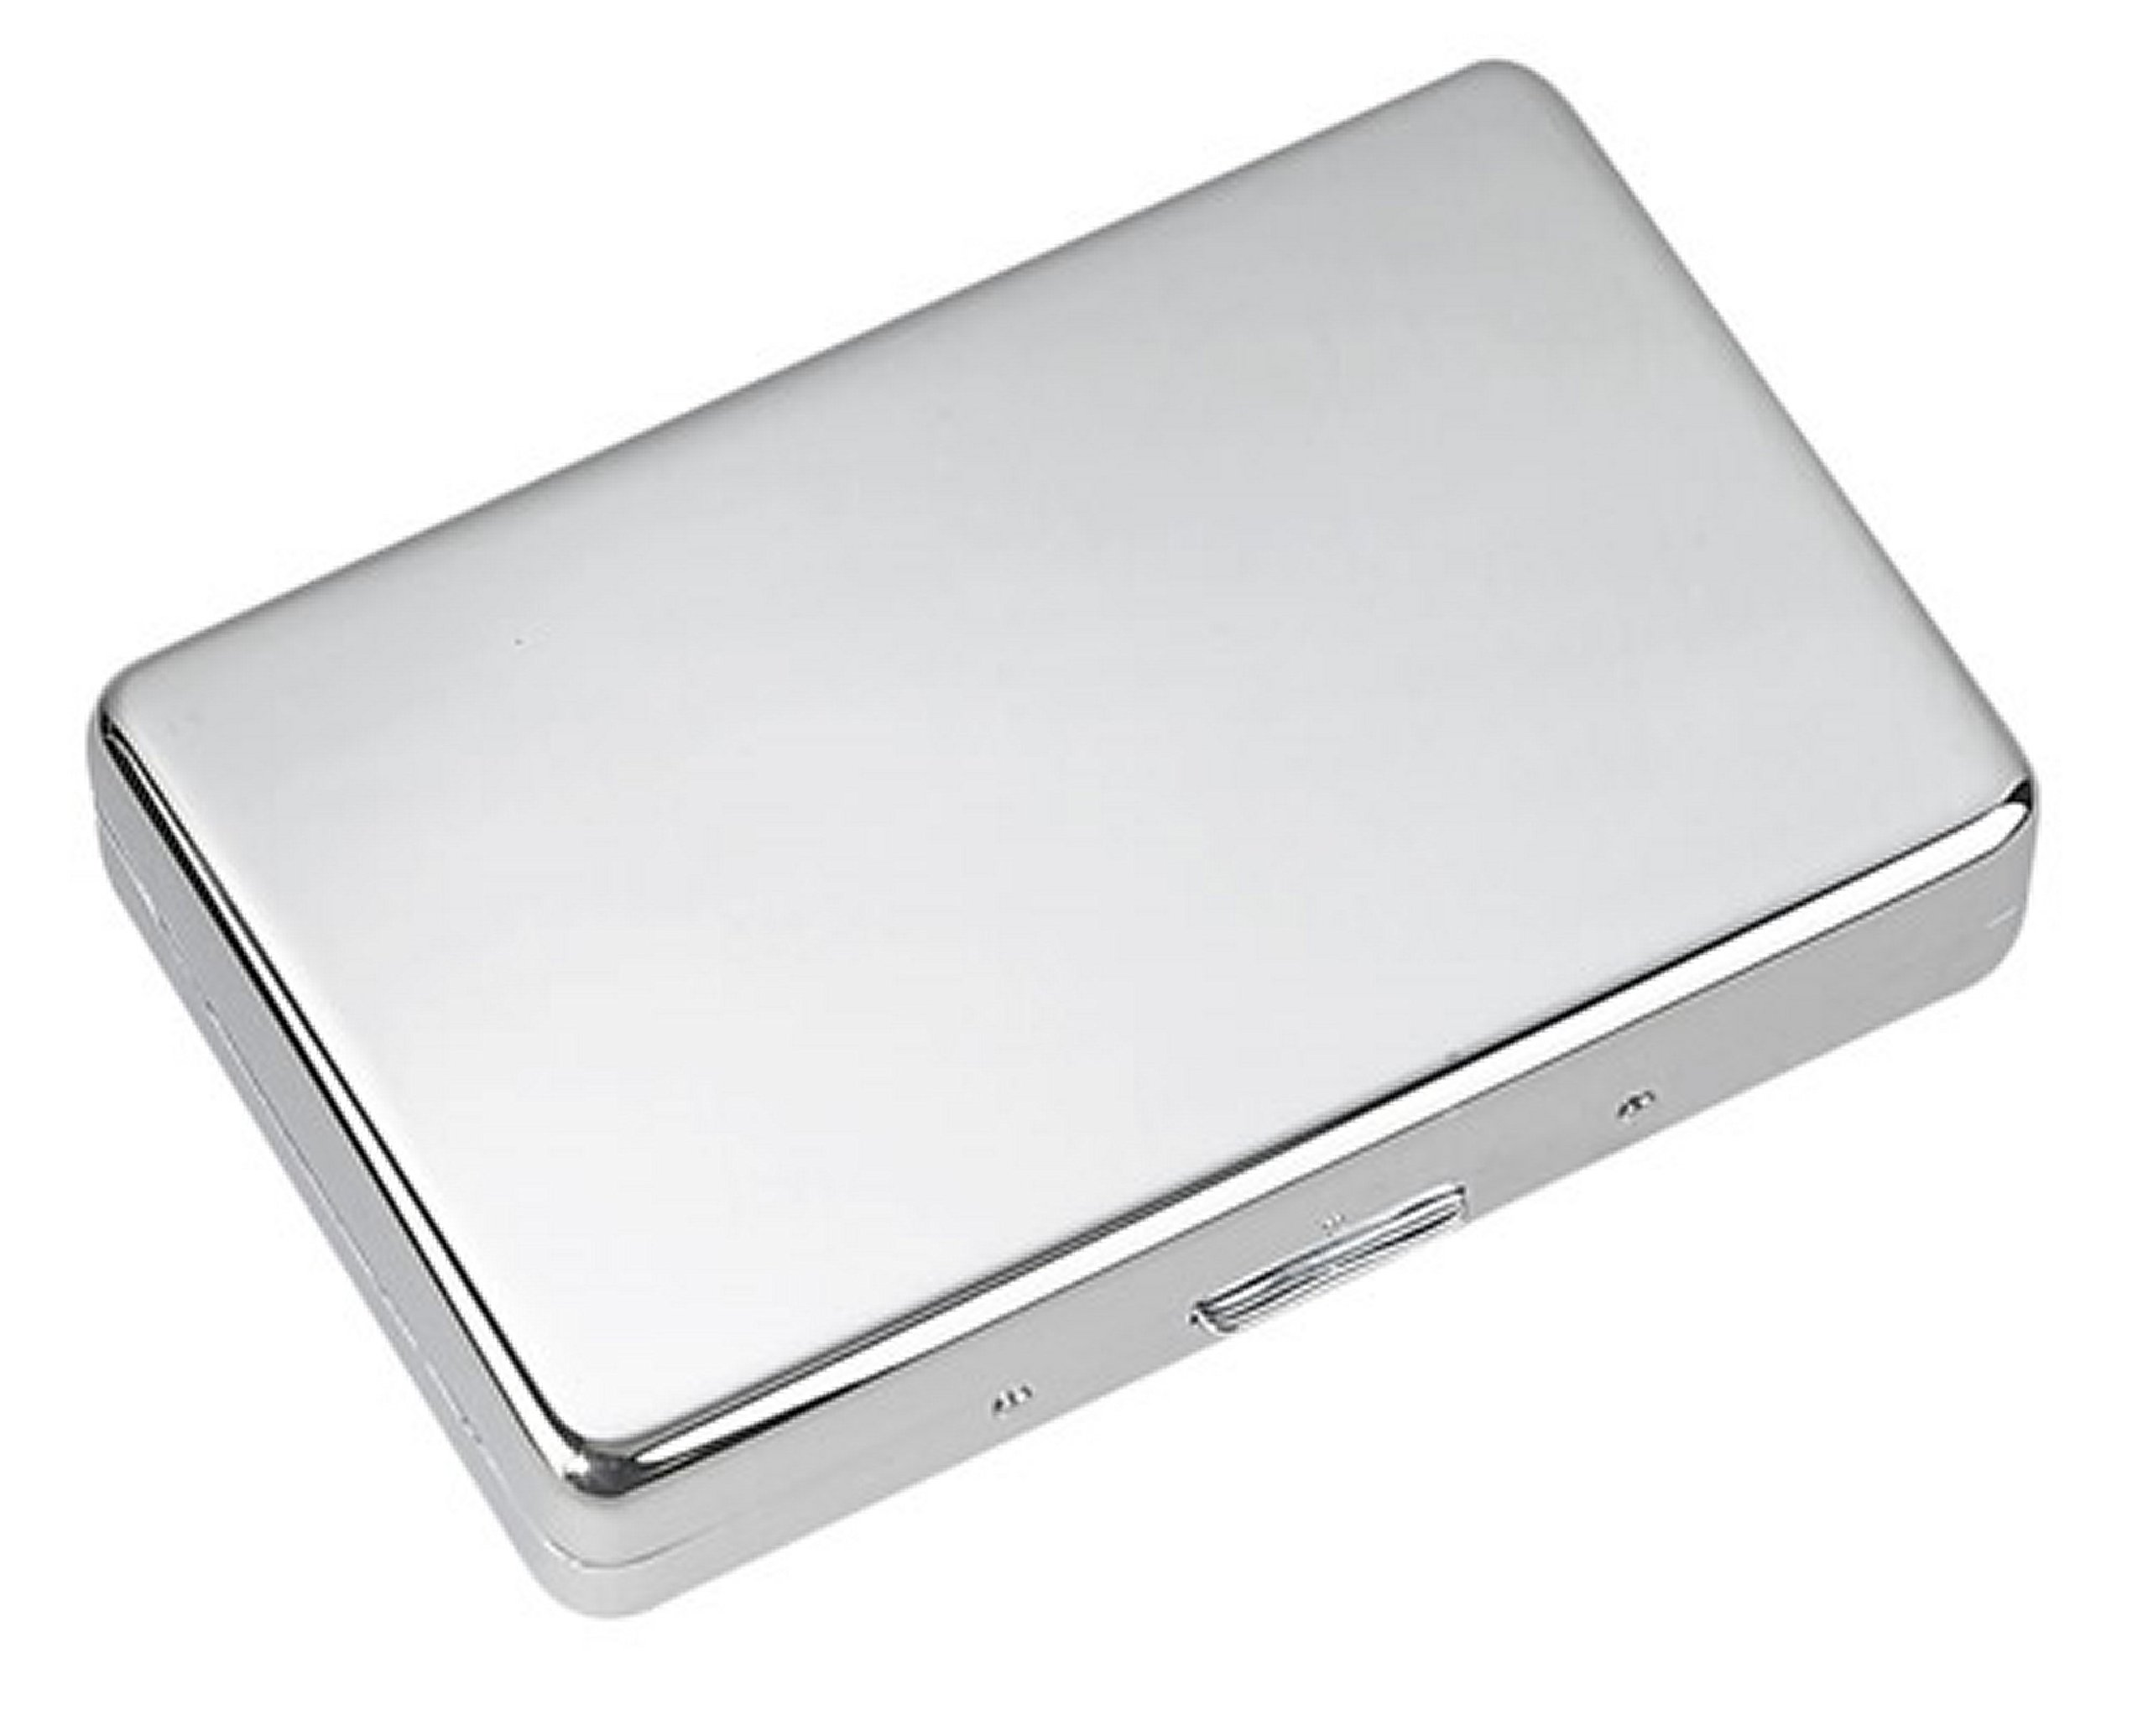 Business Card Case Computers, Electronics, Office Supplies, Computing